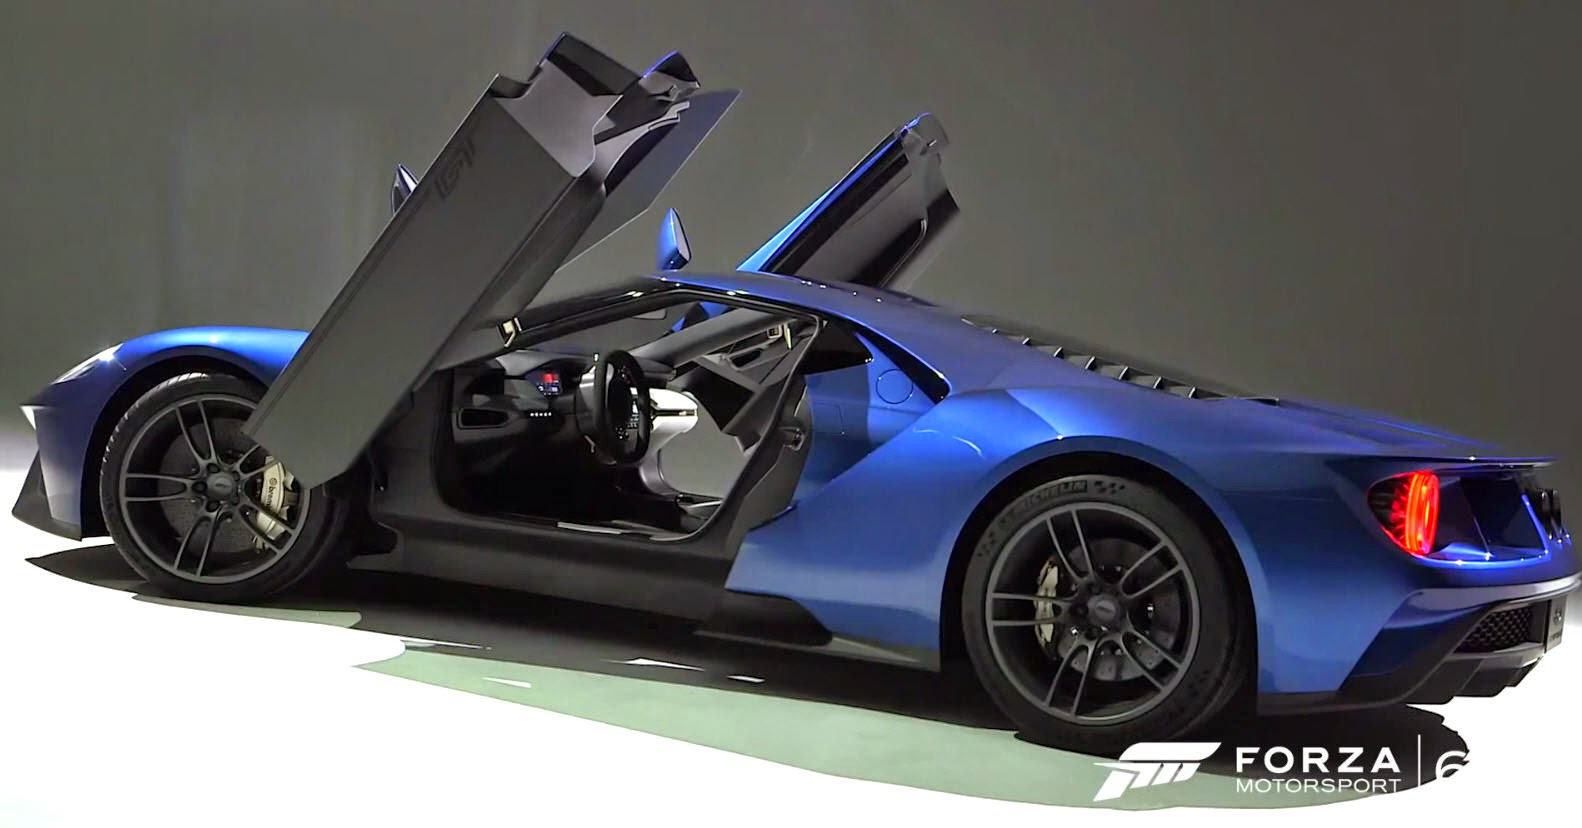 forza motorsport 6 behind the scenes cg daily news. Black Bedroom Furniture Sets. Home Design Ideas